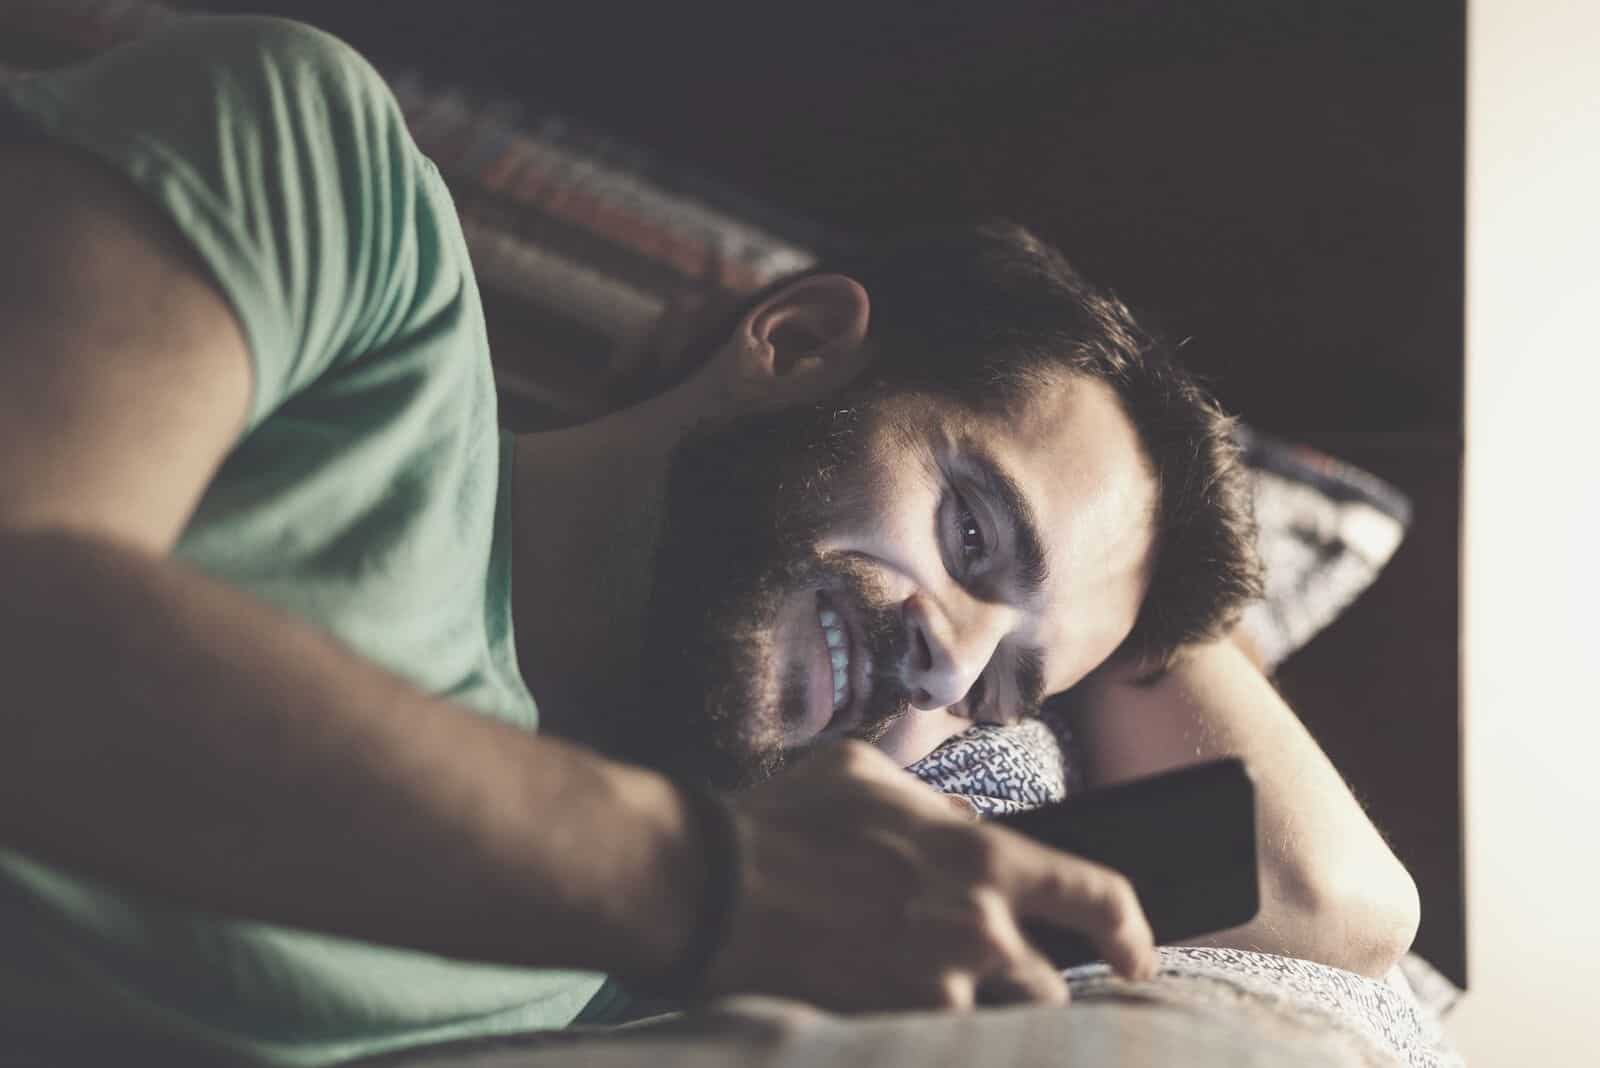 man texting while lying down in bed smiling and in dark room